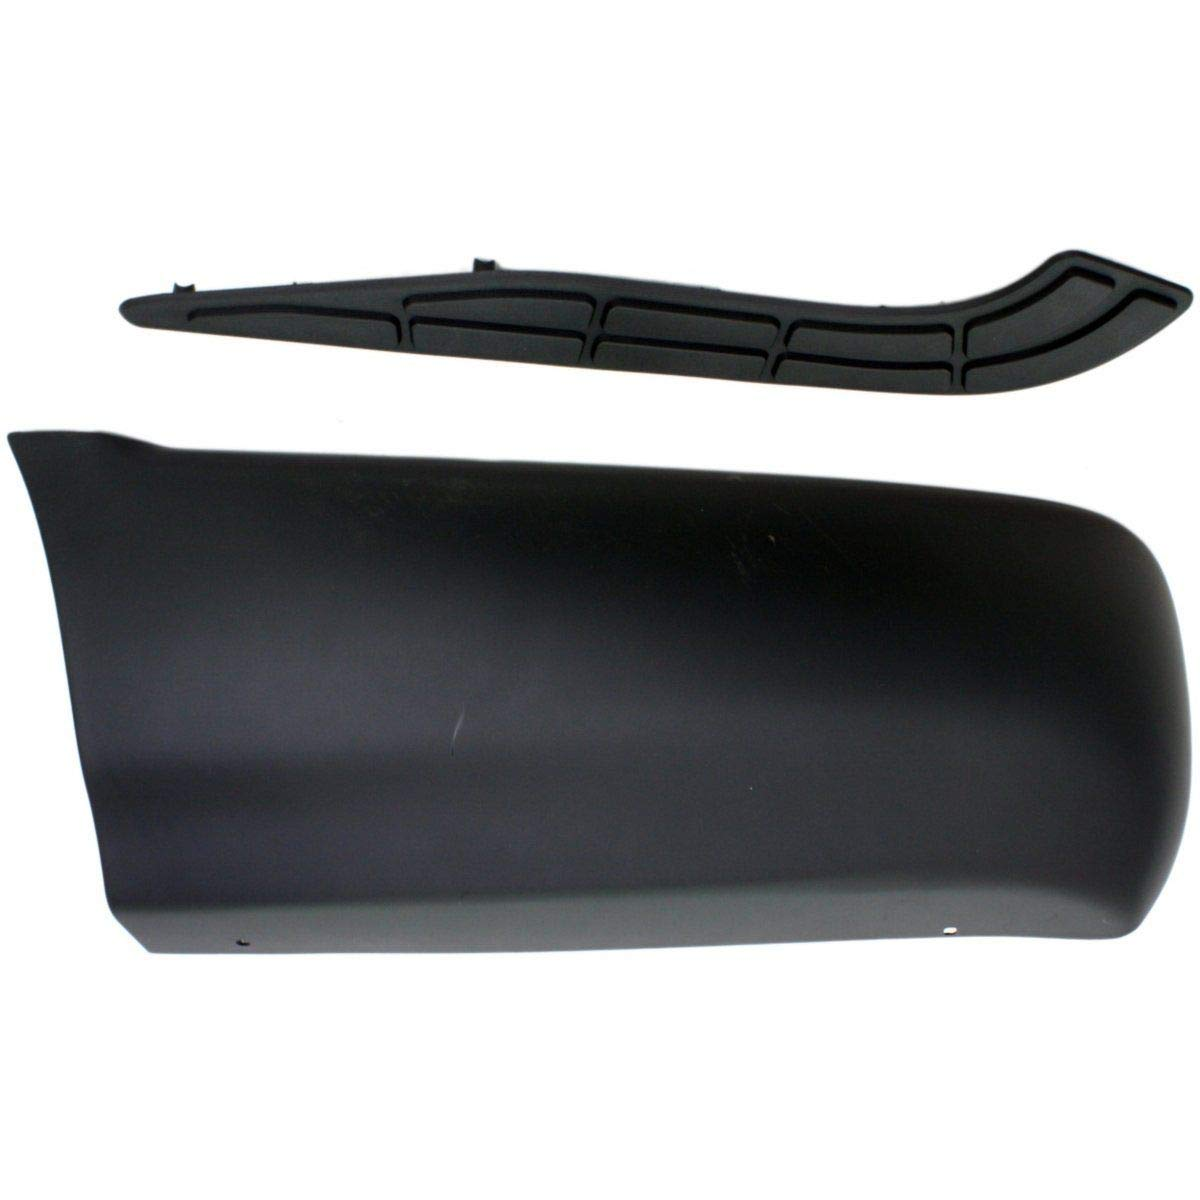 New Front Left Driver Side Quarter Panel Extension For 1994-2003 GMC Sonoma Pickup And Chevrolet S10 Primed, Stepside, Standard Cab Pickup GM1702109 Fitrite Autoparts